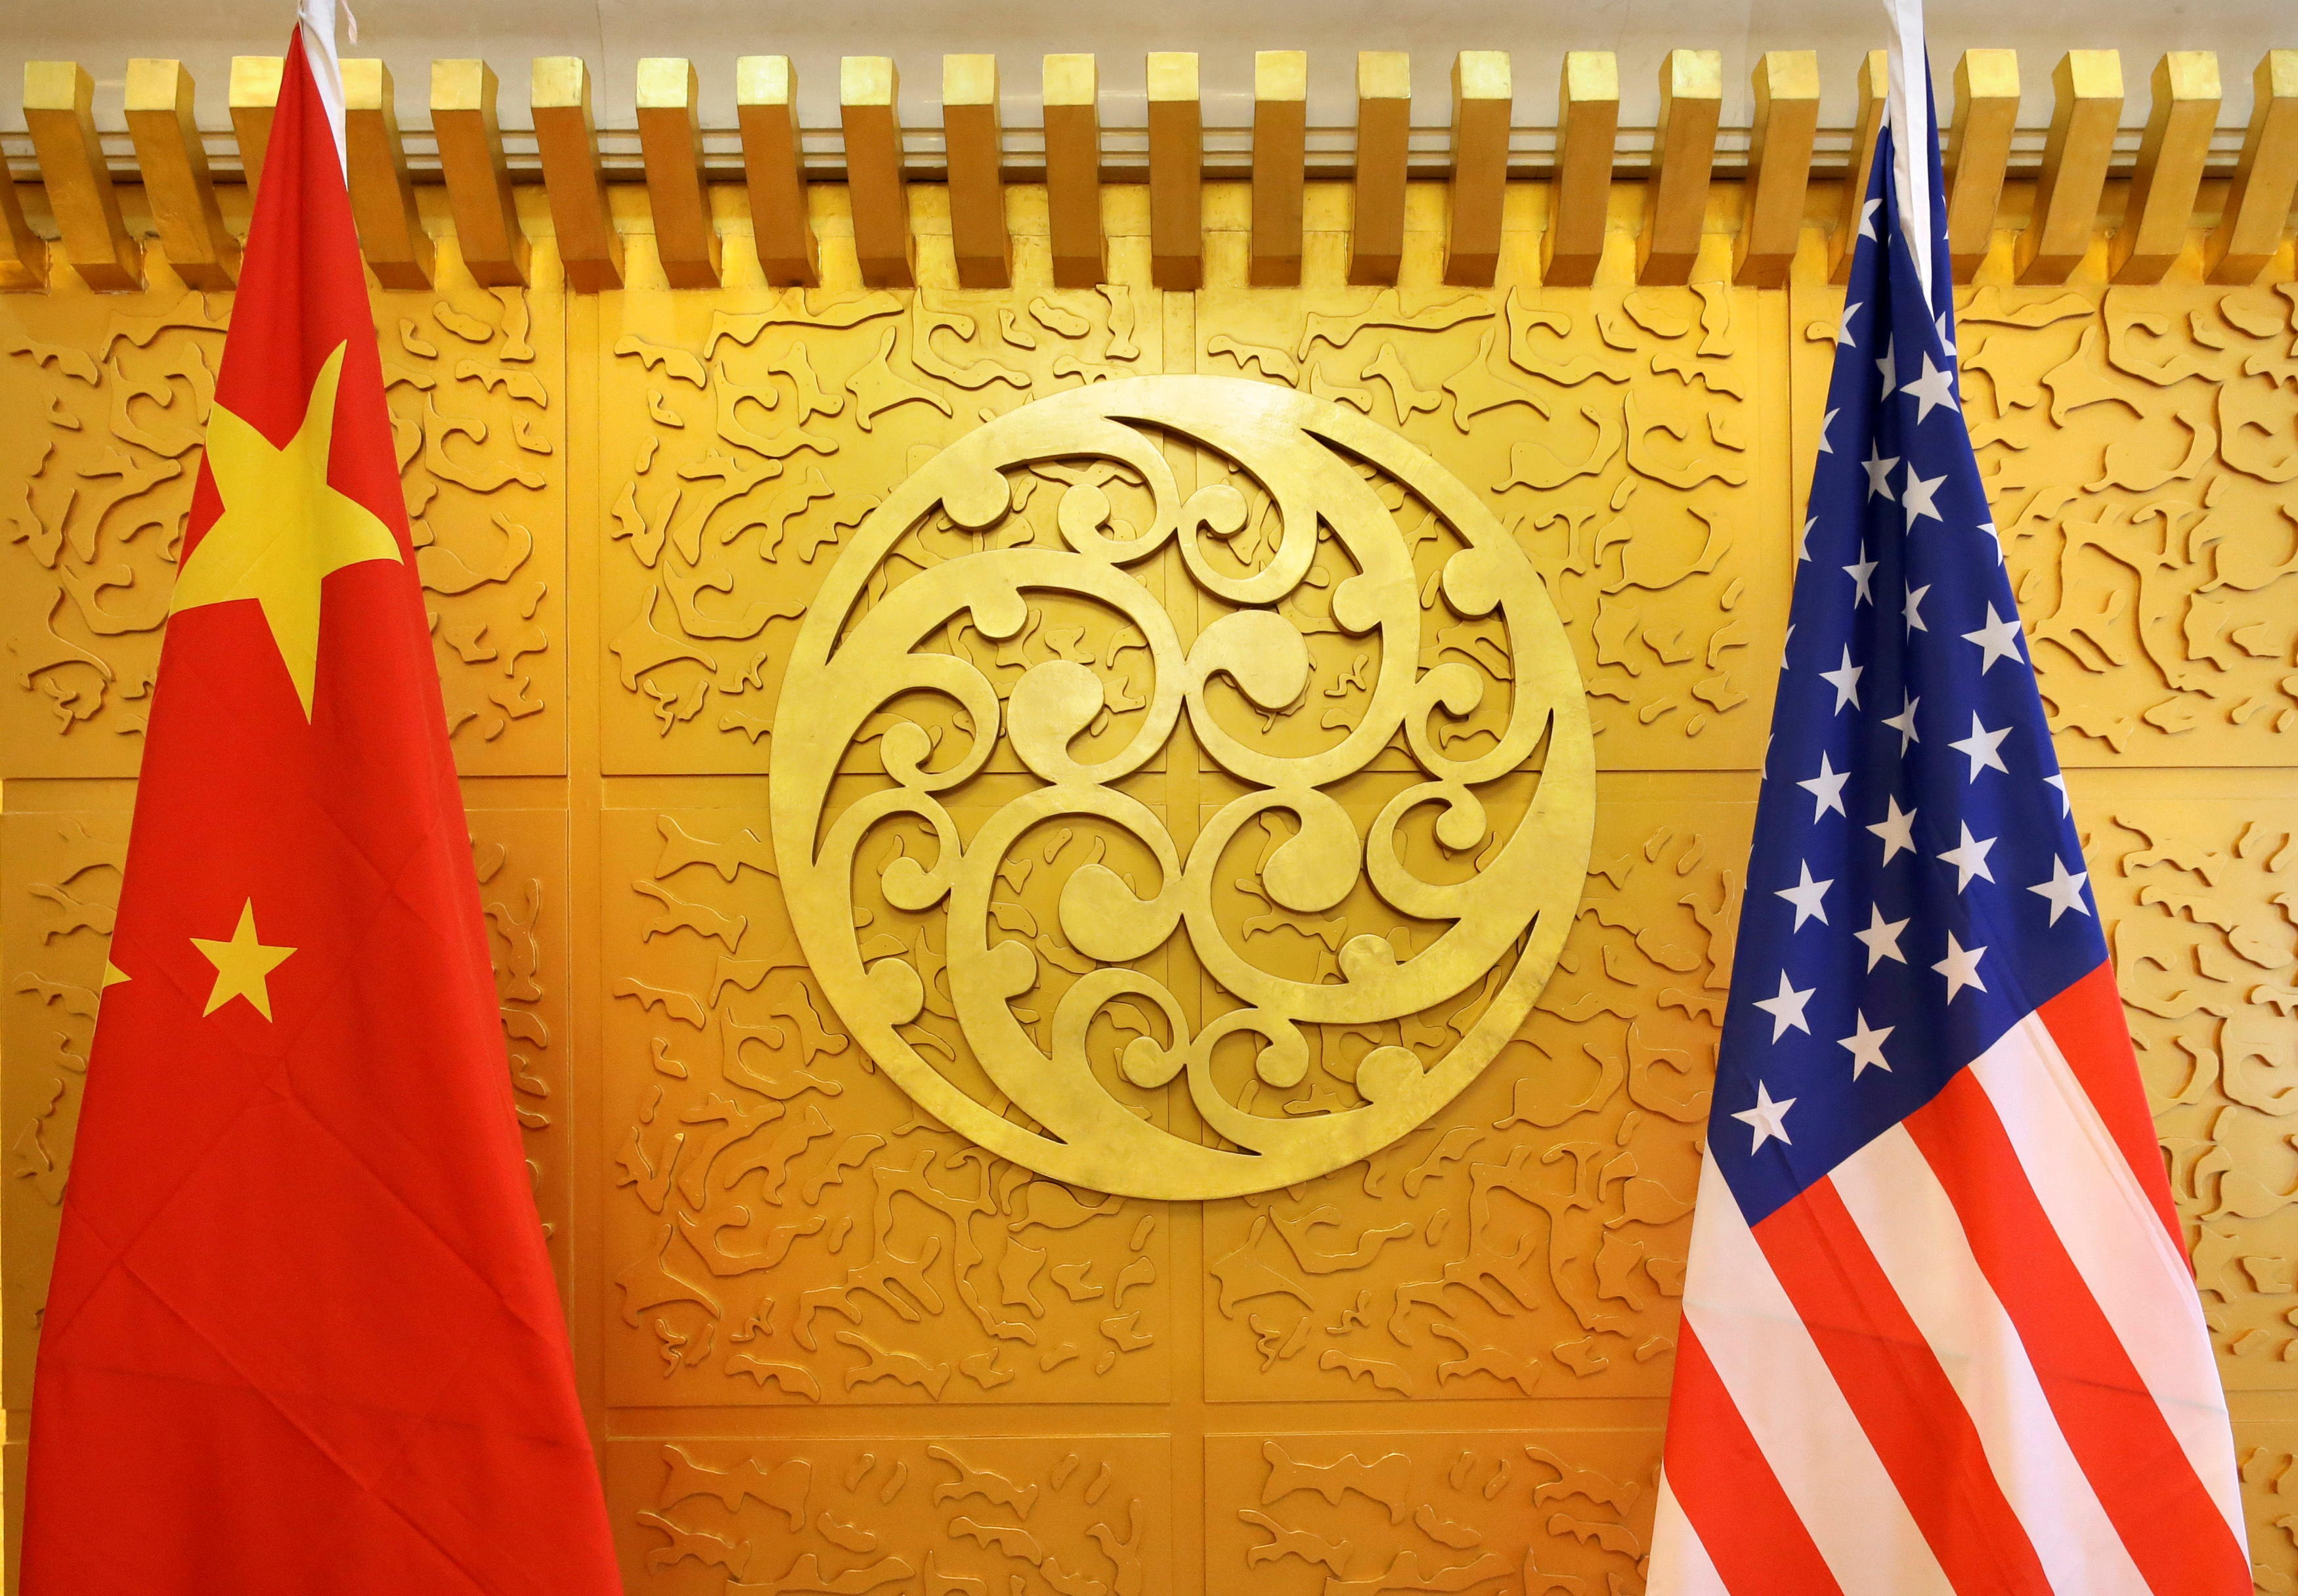 Chinese and U.S. flags are set up for a meeting at China's Ministry of Transport in Beijing, China April 27, 2018. REUTERS/Jason Lee/File Photo